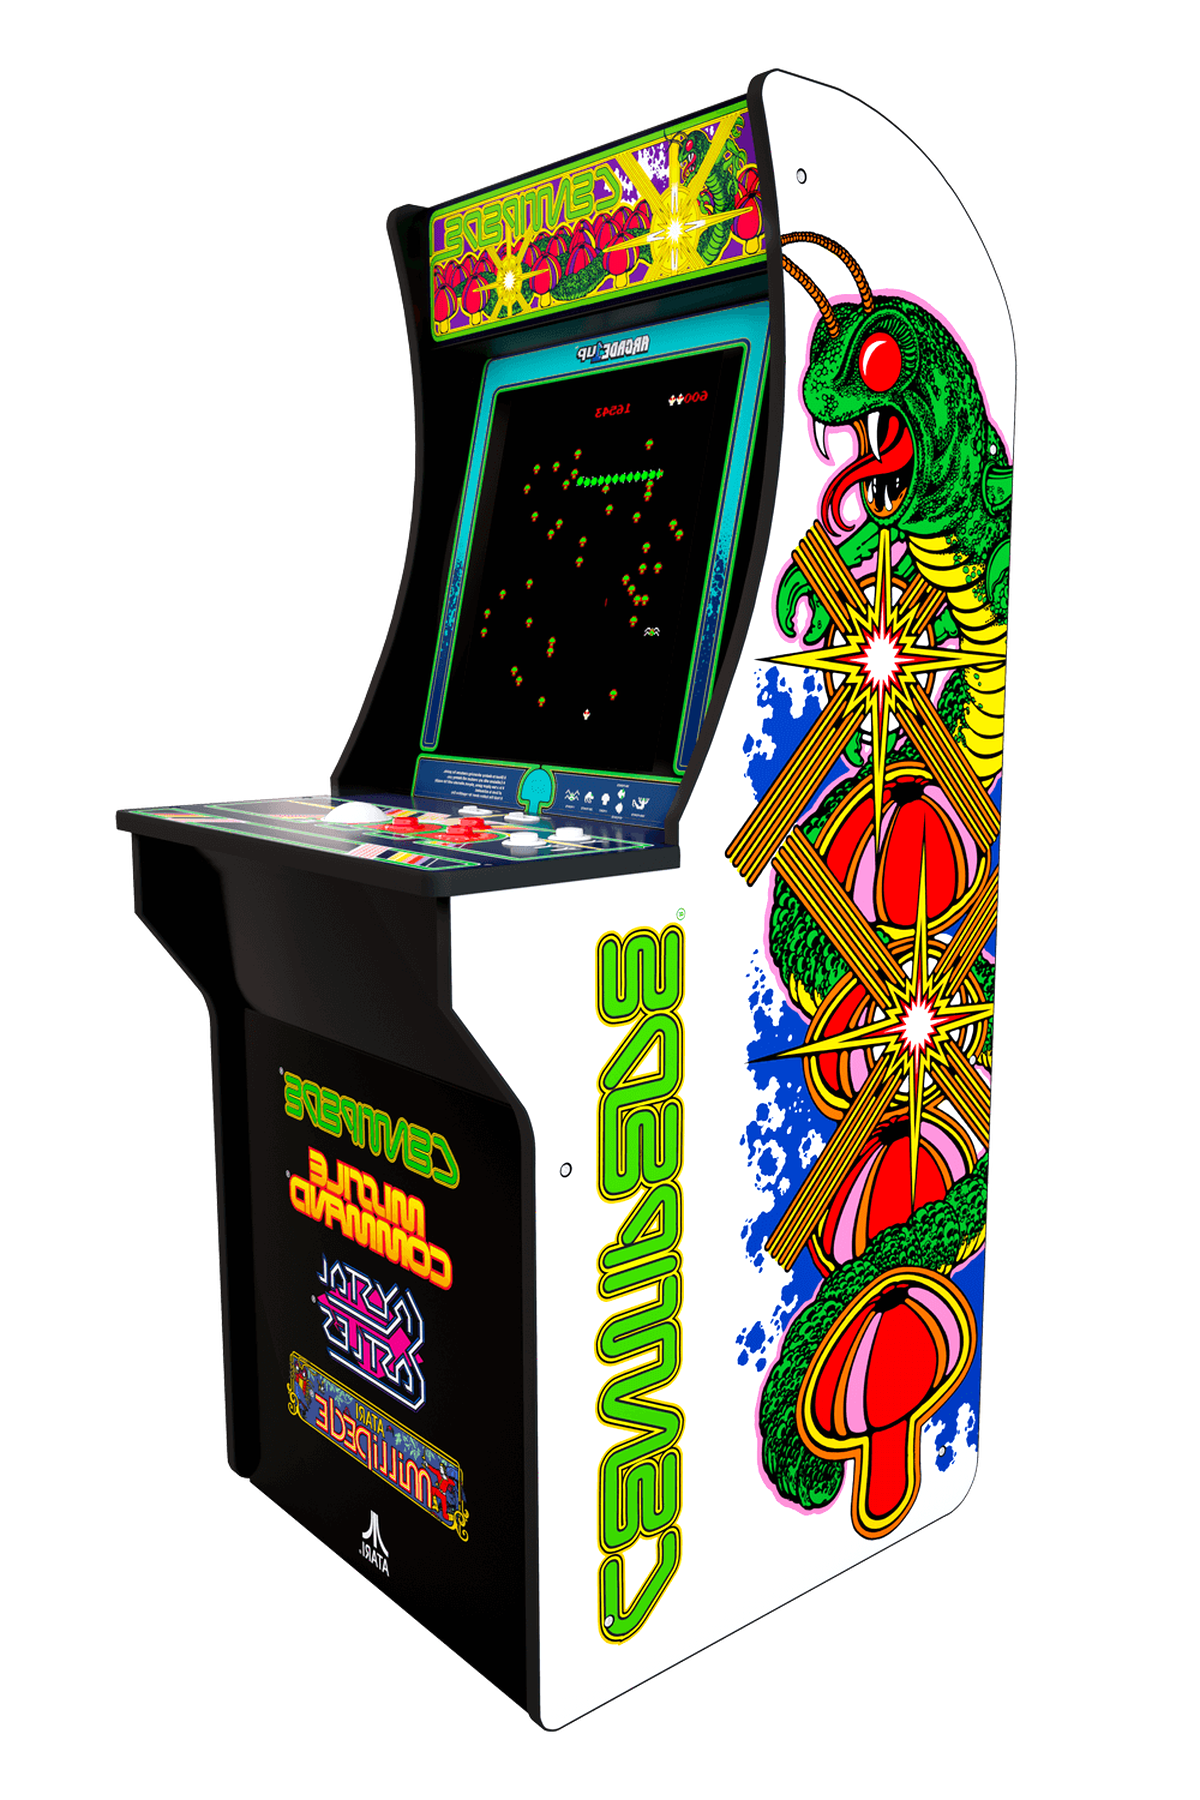 Centipede Arcade For Sale Only 4 Left At 65